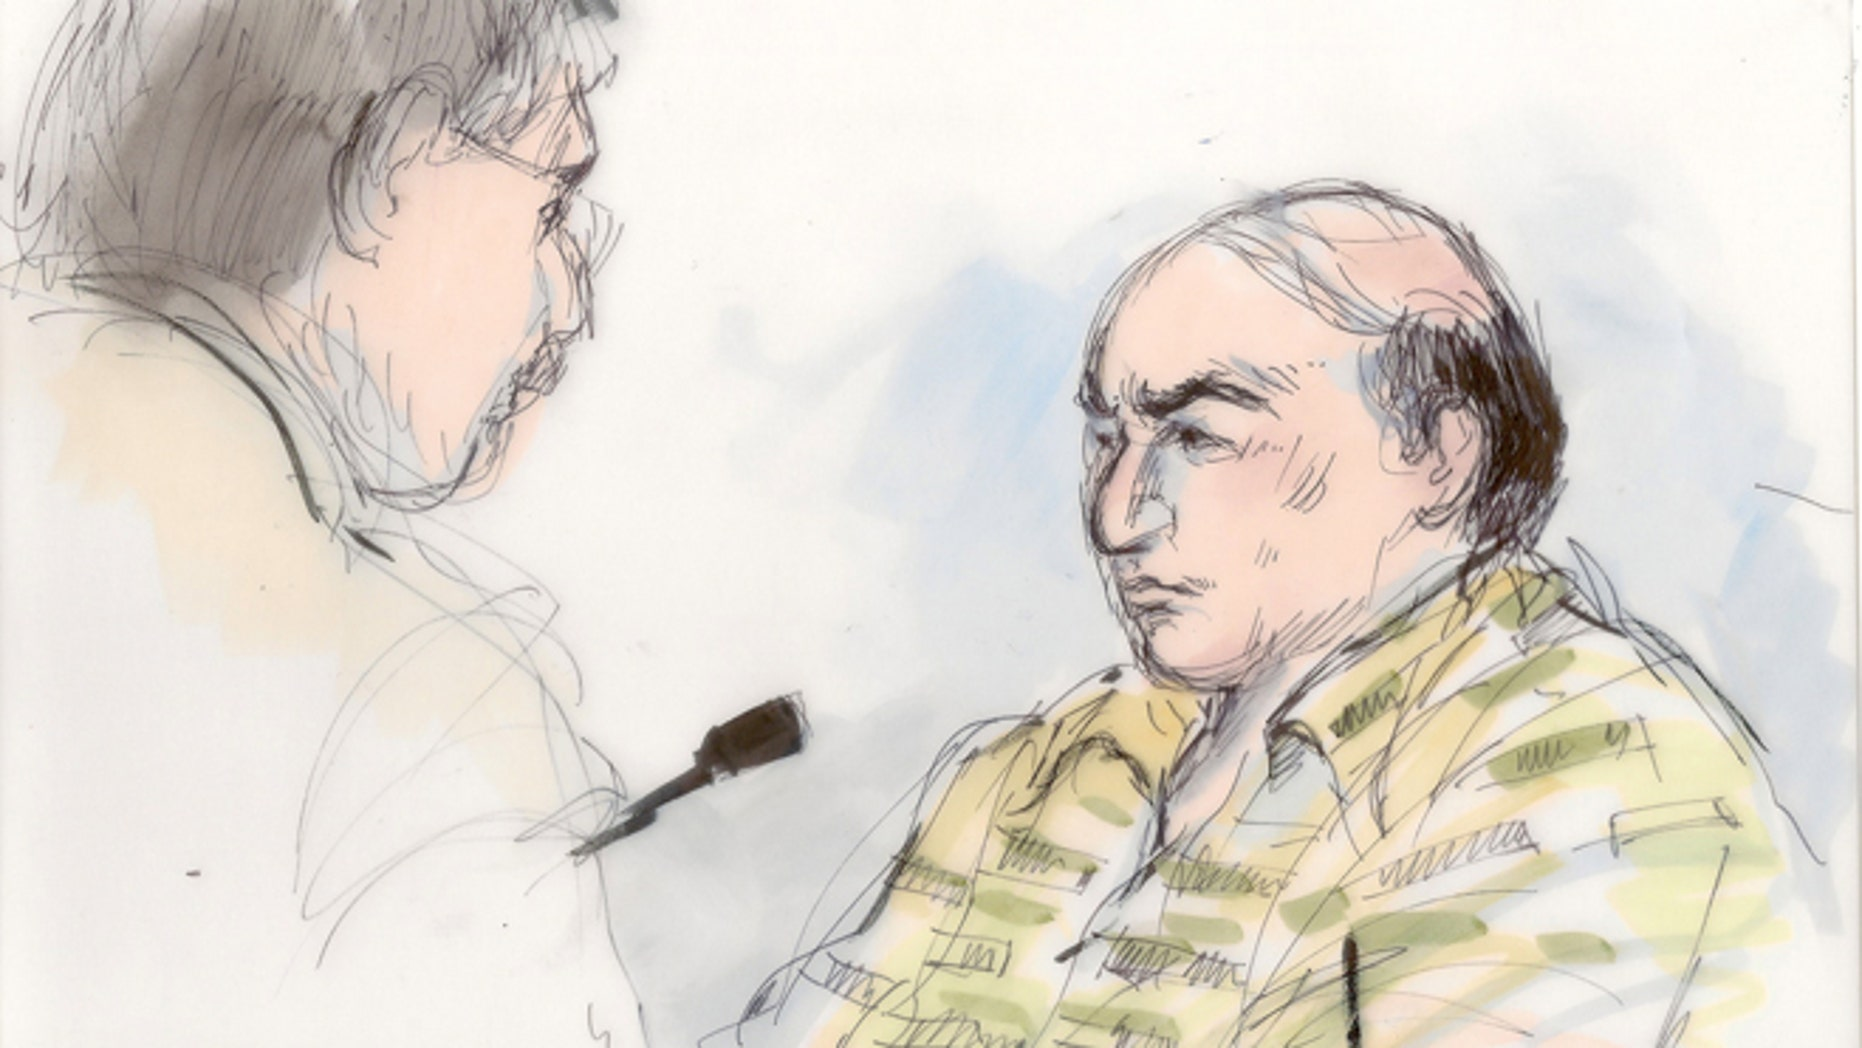 Sept. 27, 2012: This file courtroom sketch shows shows Mark Basseley Youssef talking with his attorney Steven Seiden, left, in court in Los Angeles.